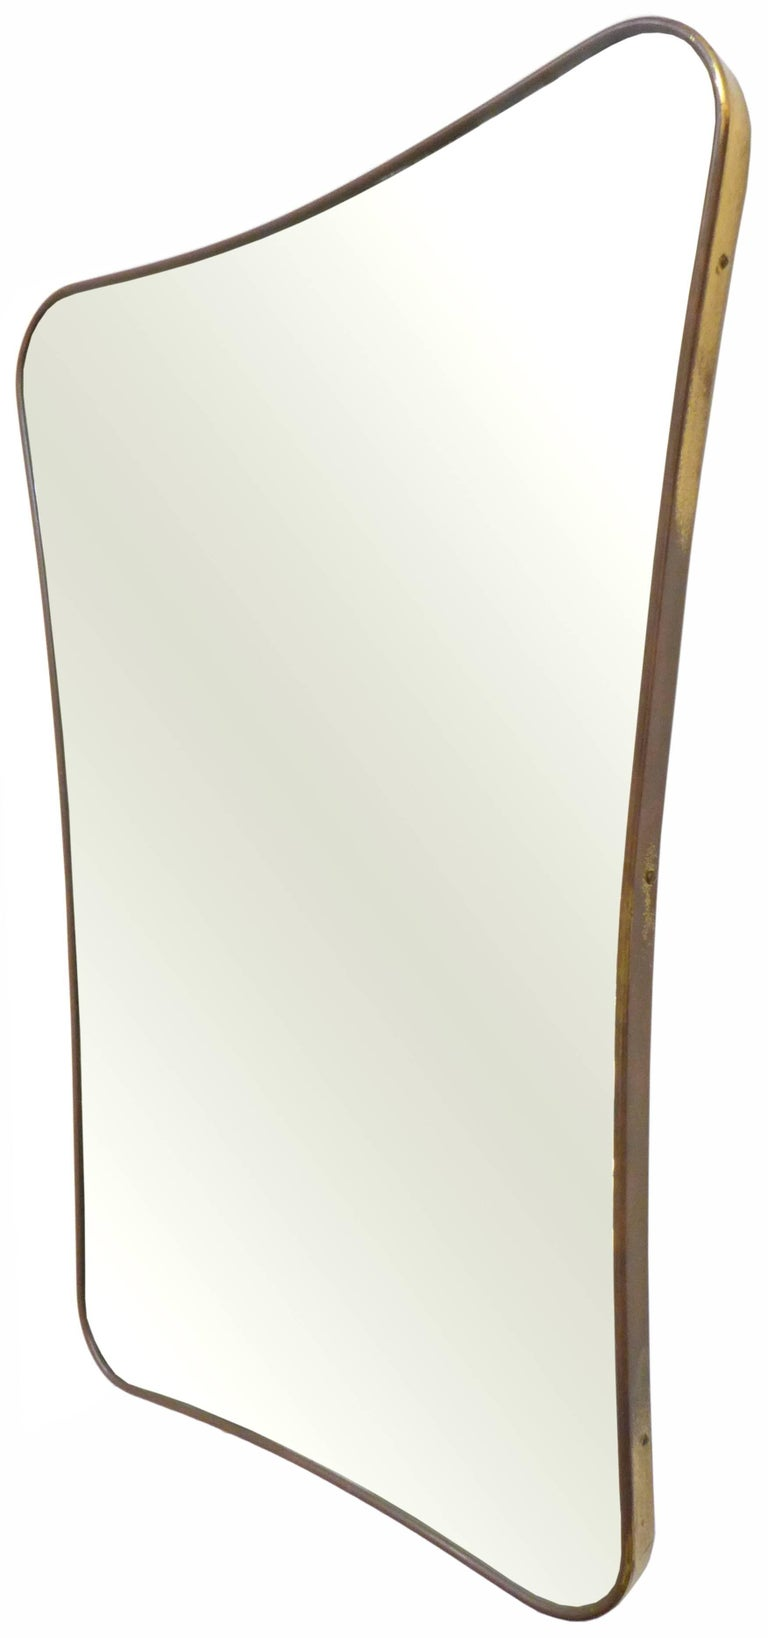 An elegant, Italian, brass-framed mirror. A perfectly patinated, slender brass frame with a gently curving and tapered, biomorphic Silhouette housing an ideally, very subtly aged vintage mirror. A Classic, sophisticated decorative element.